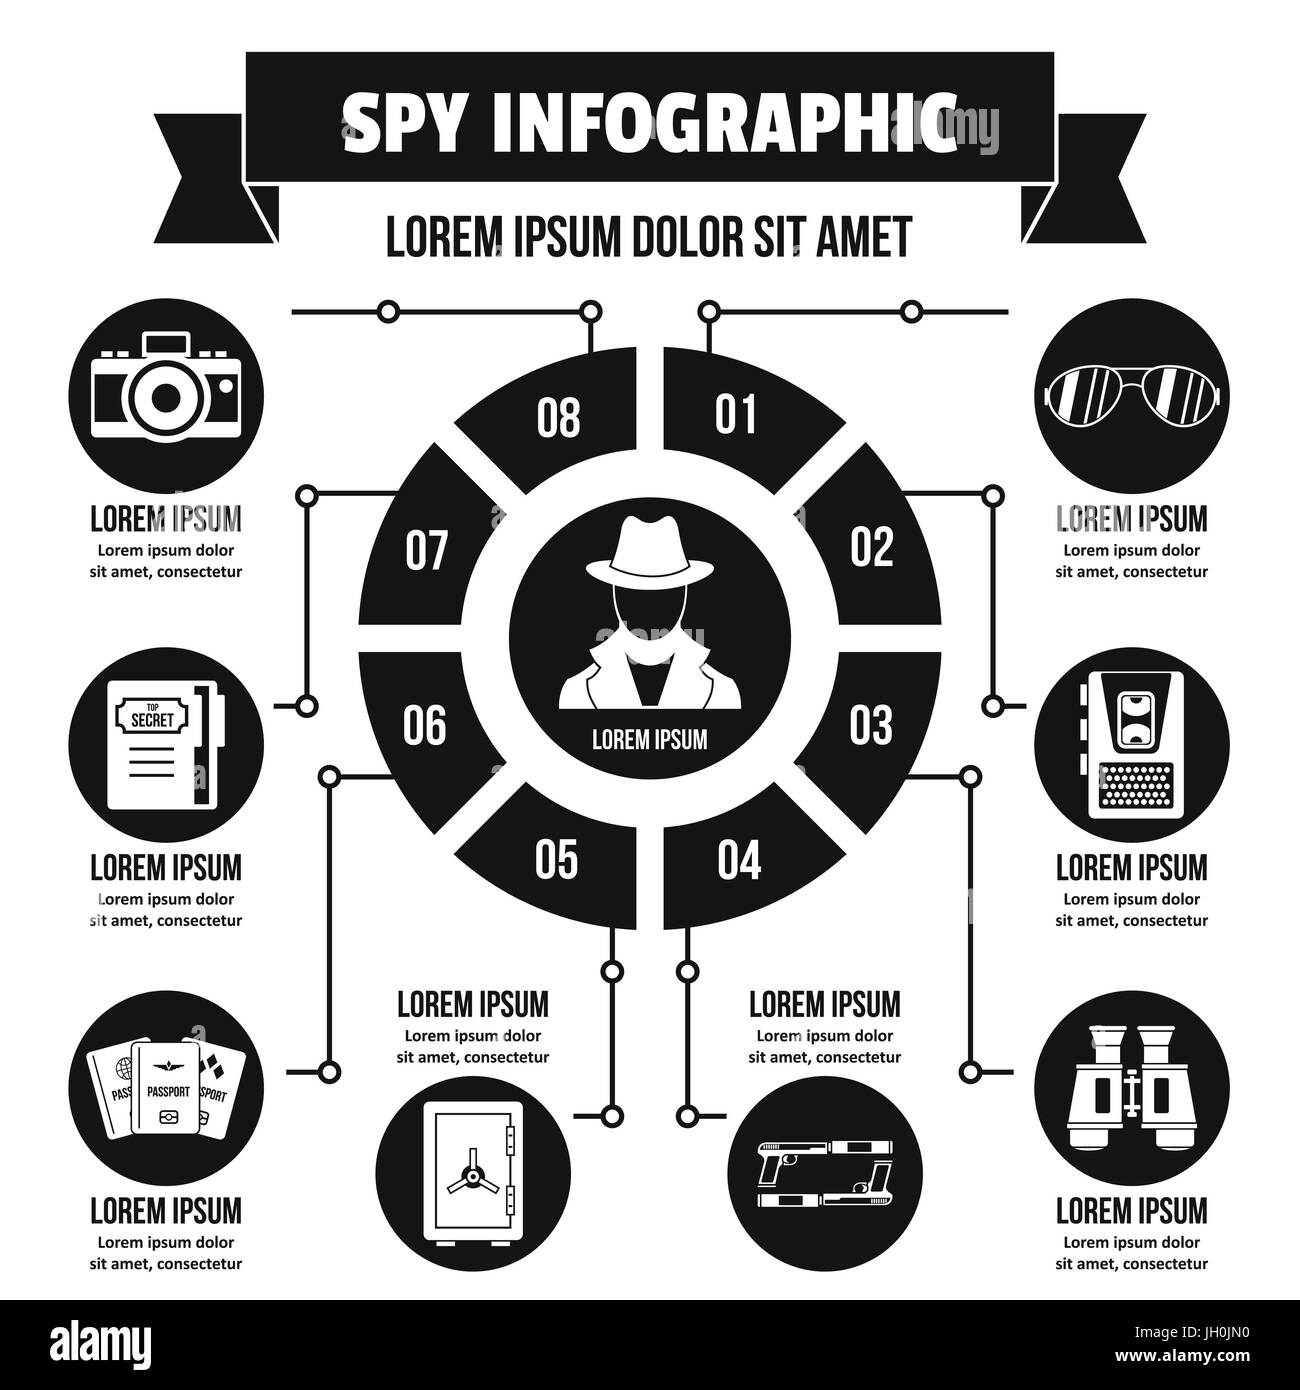 Spy infographic concept, simple style - Stock Image